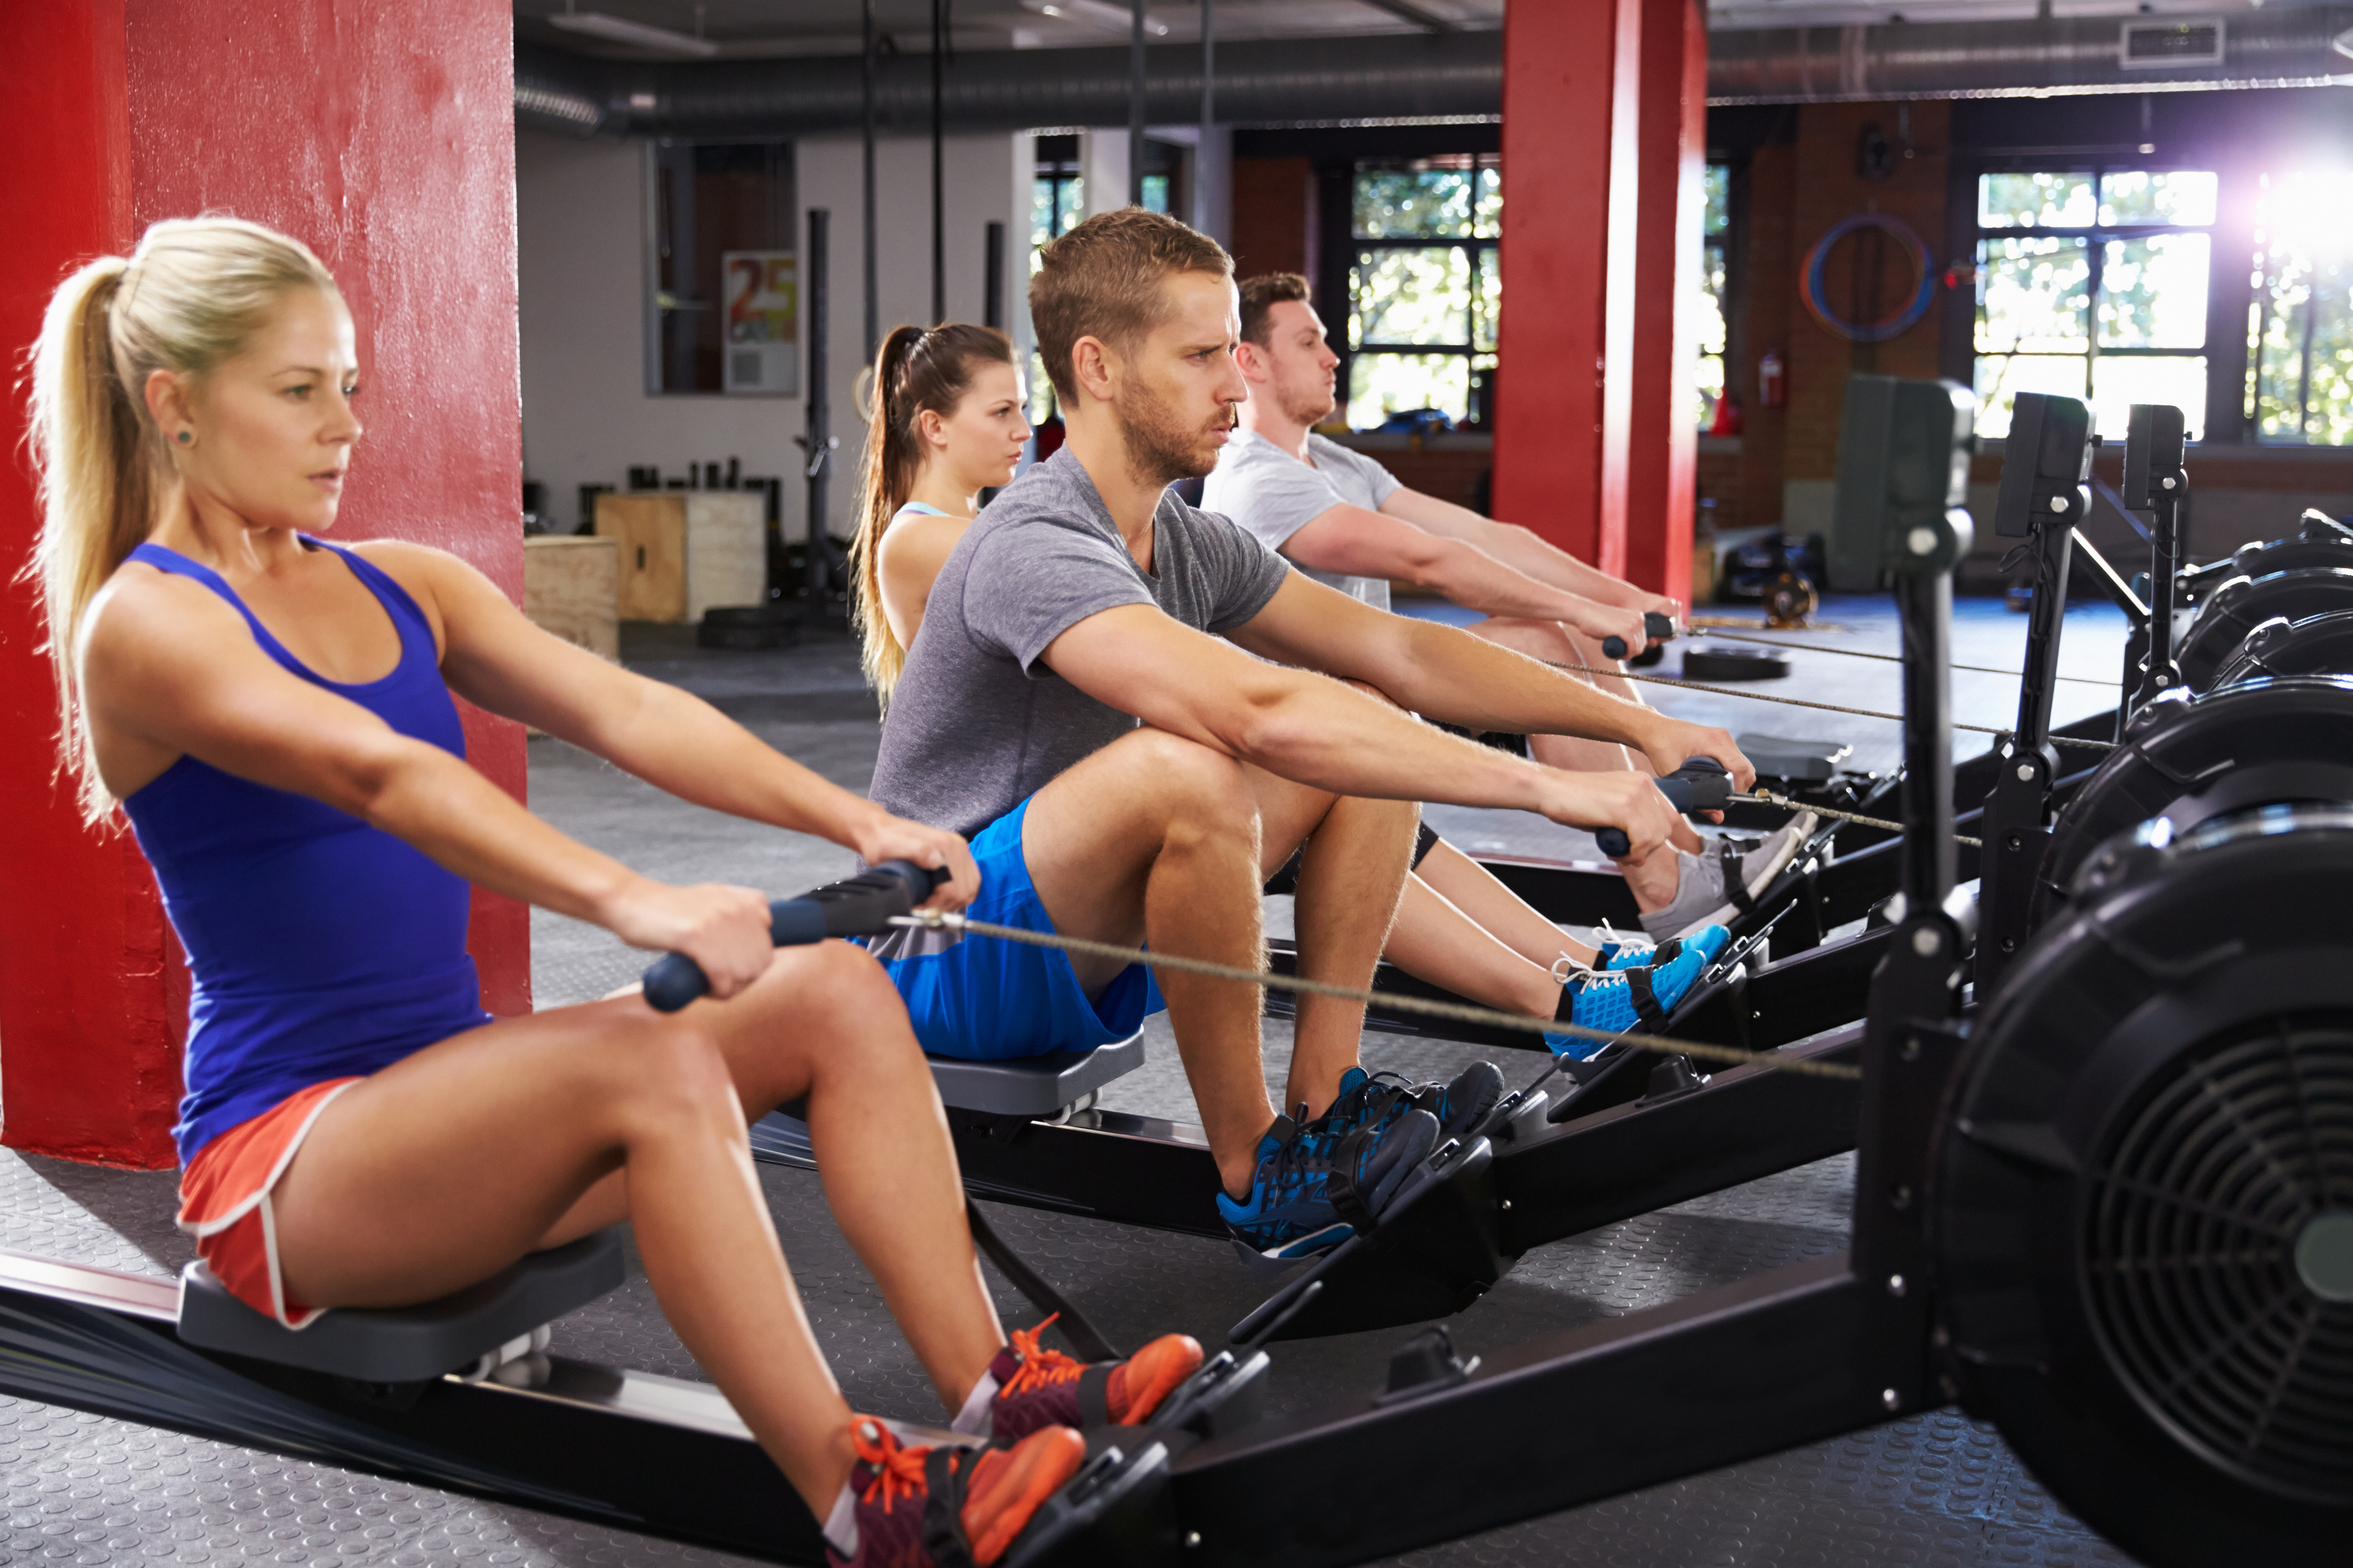 Gym Class Working Out On Rowing Machines Together